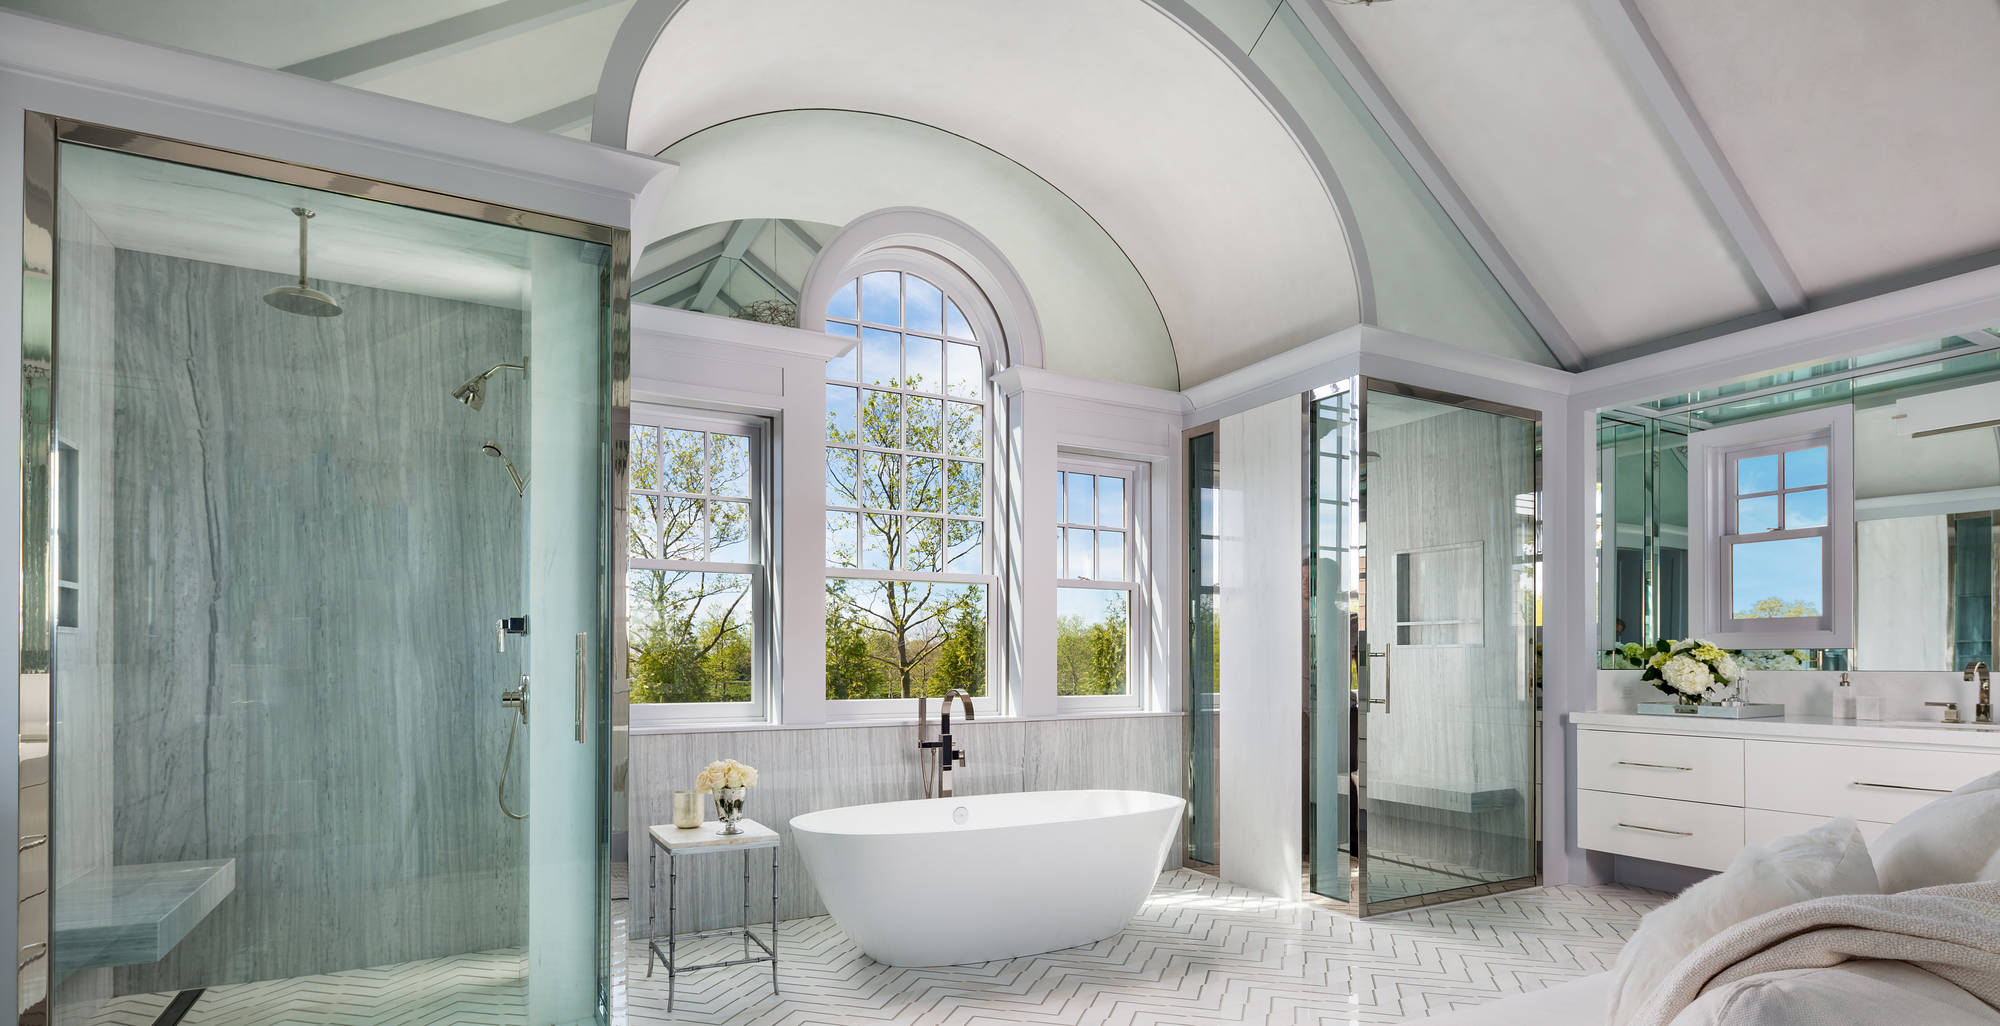 Bathroom In A House With 16 Bathrooms There Are Lots Of Choices Wsj